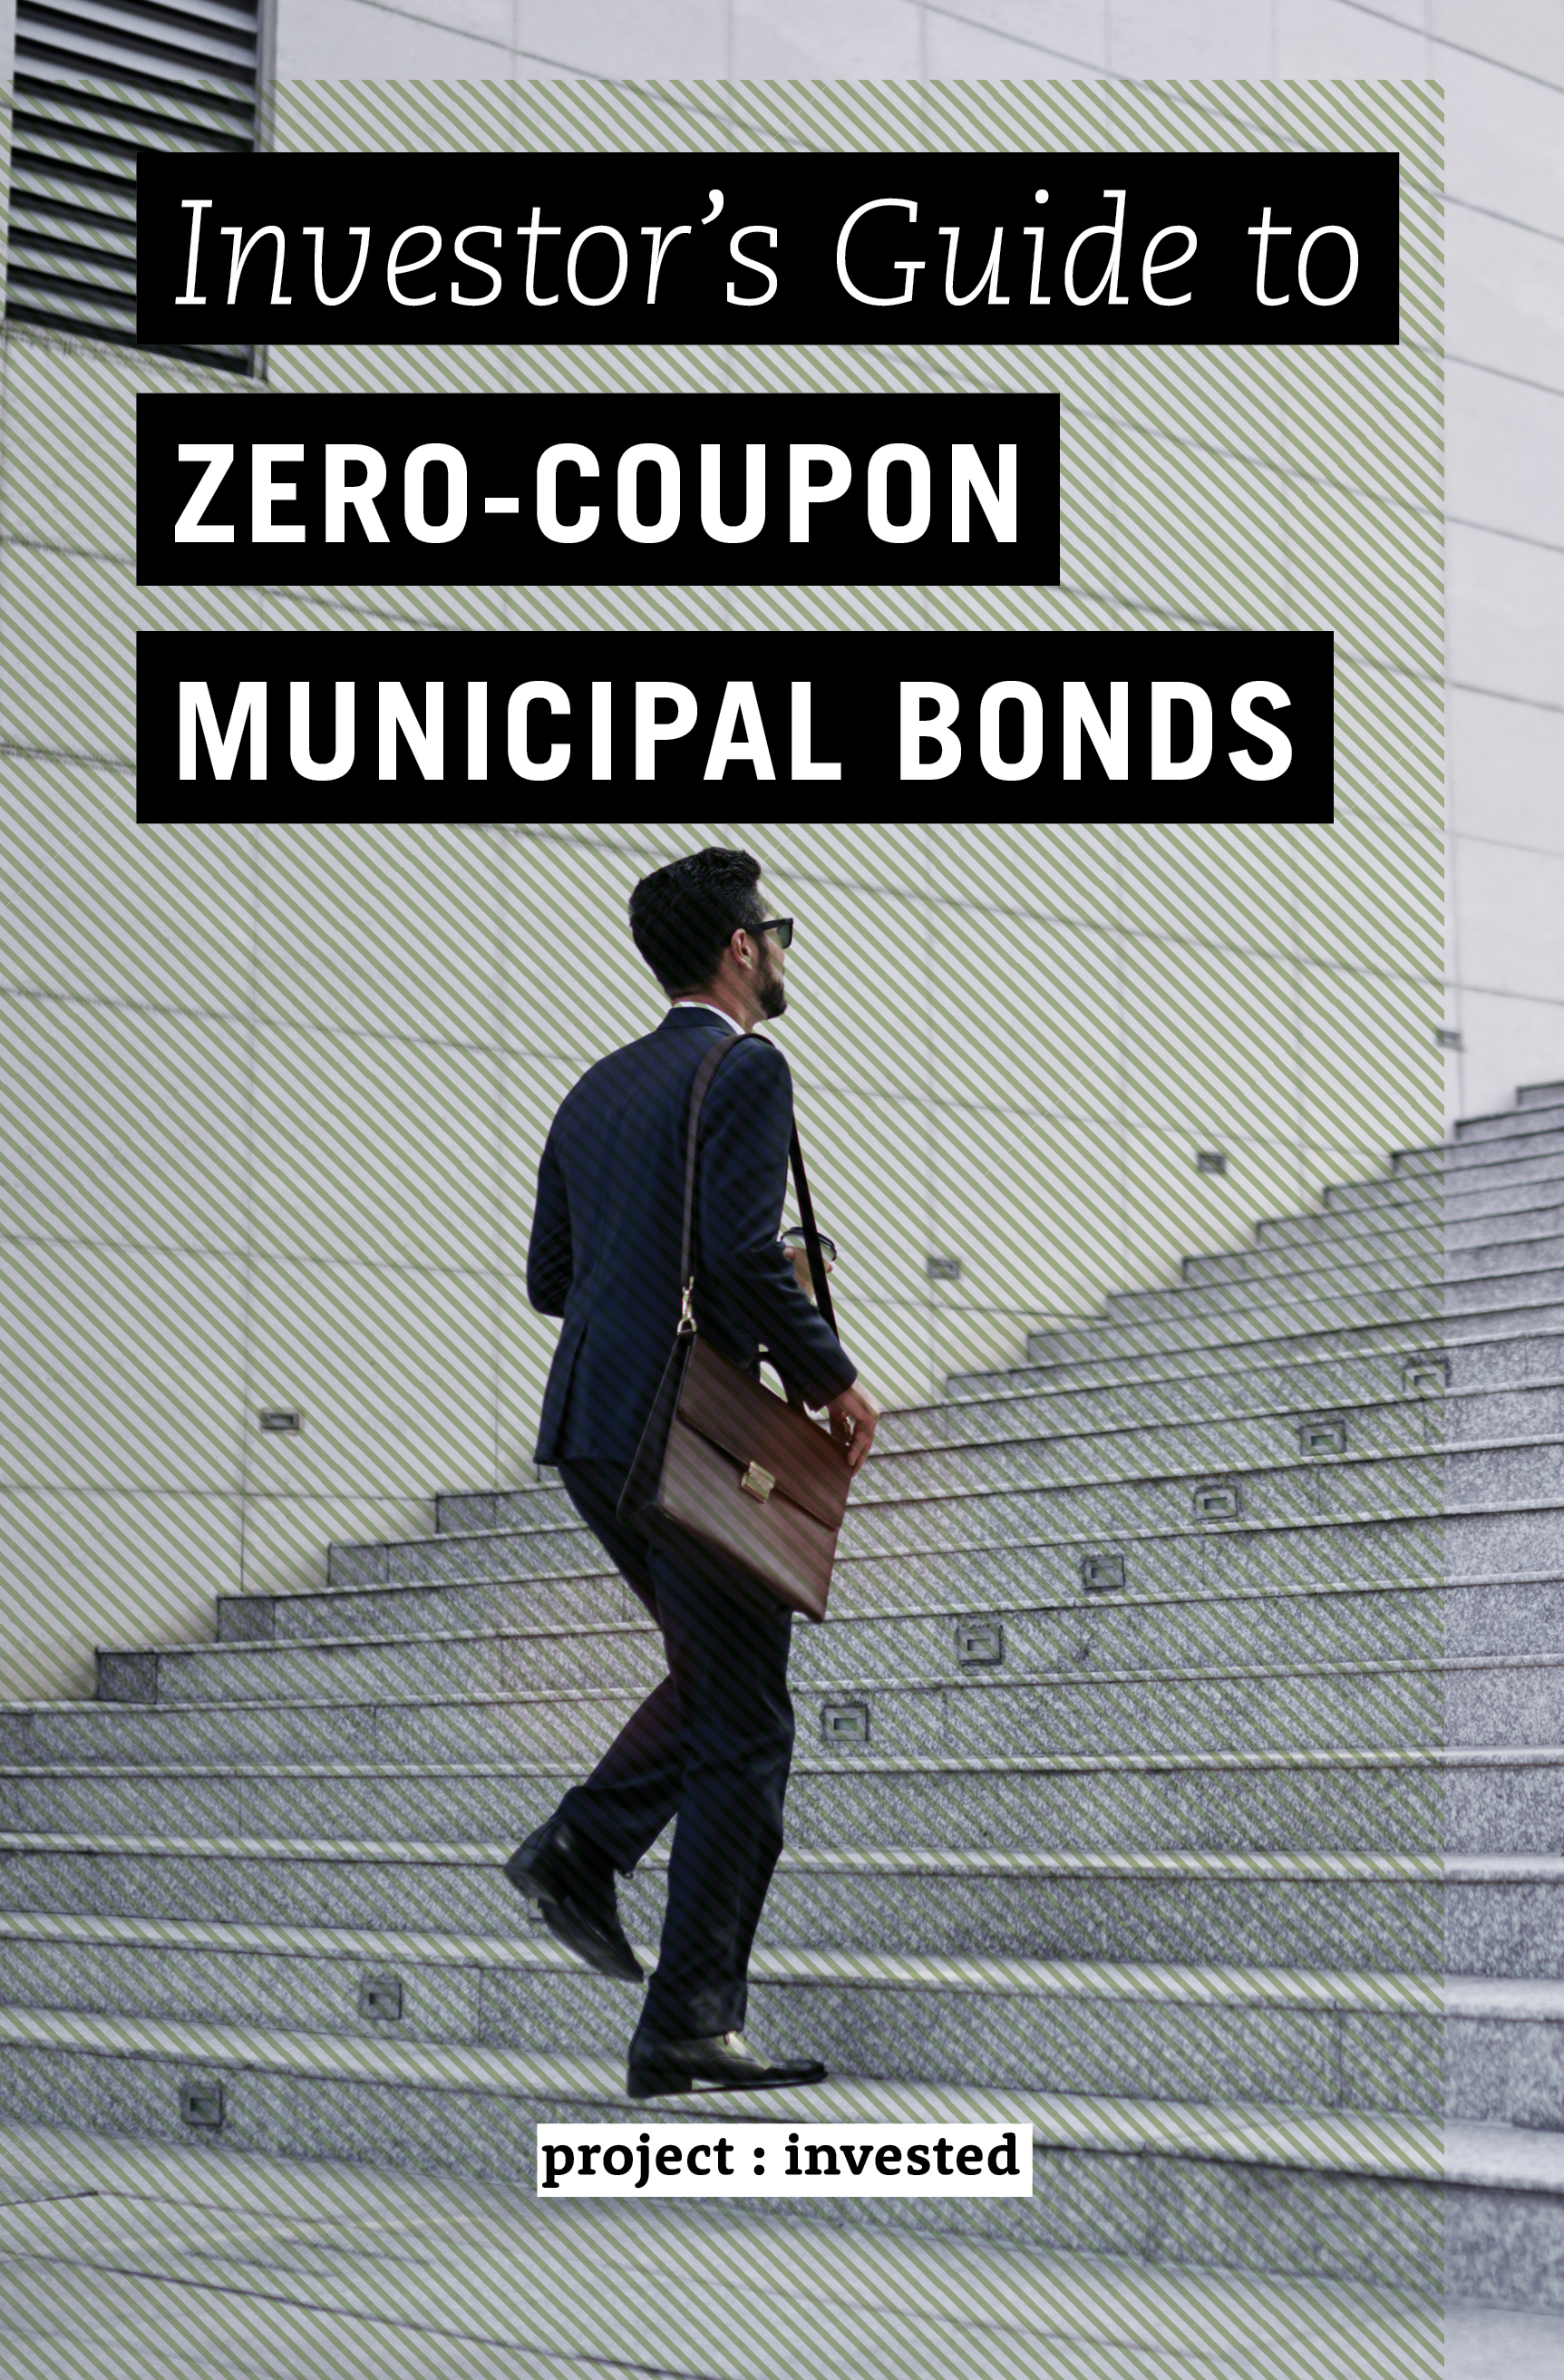 Investor's Guide to Zero-Coupon Municipal Bonds